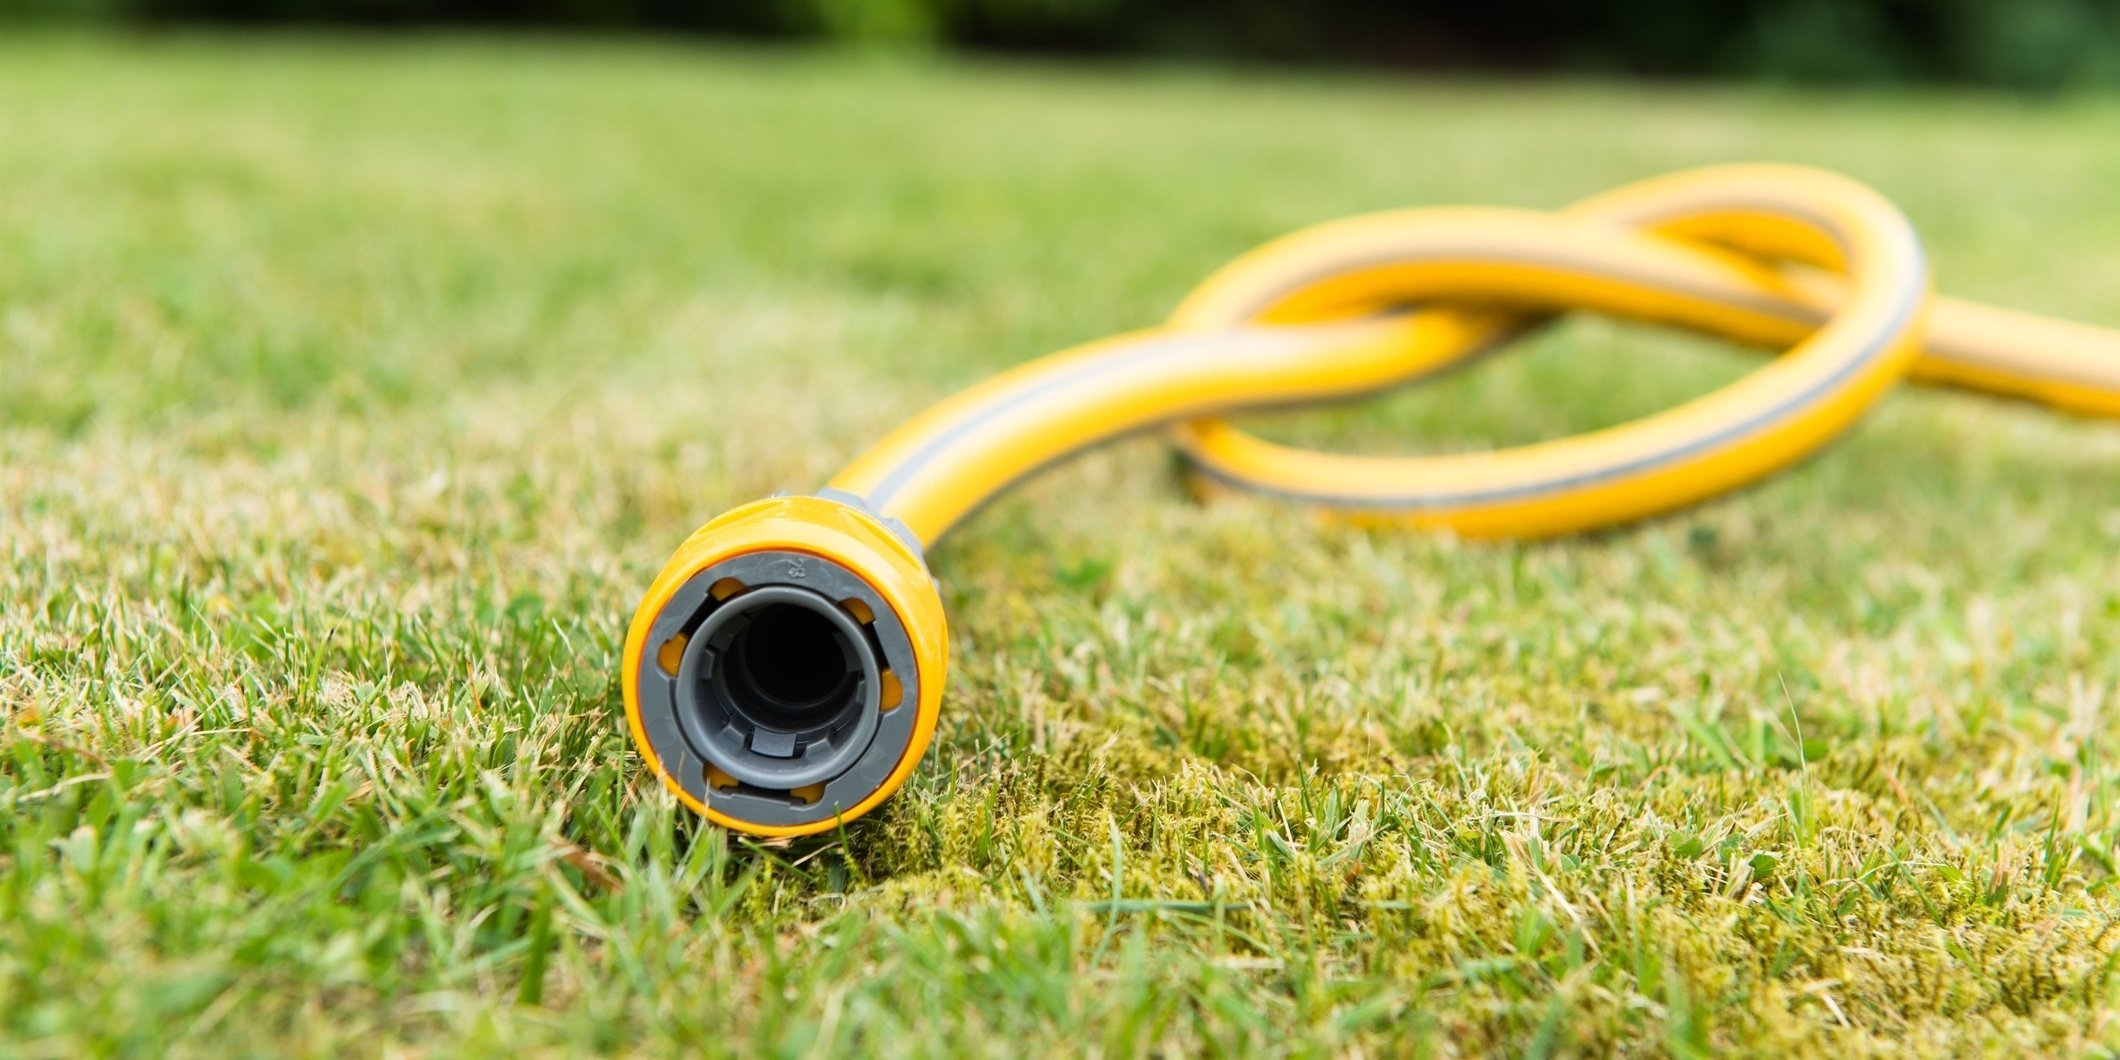 Watering deep and infrequent encourages grass roots to grow deeper into the soil.